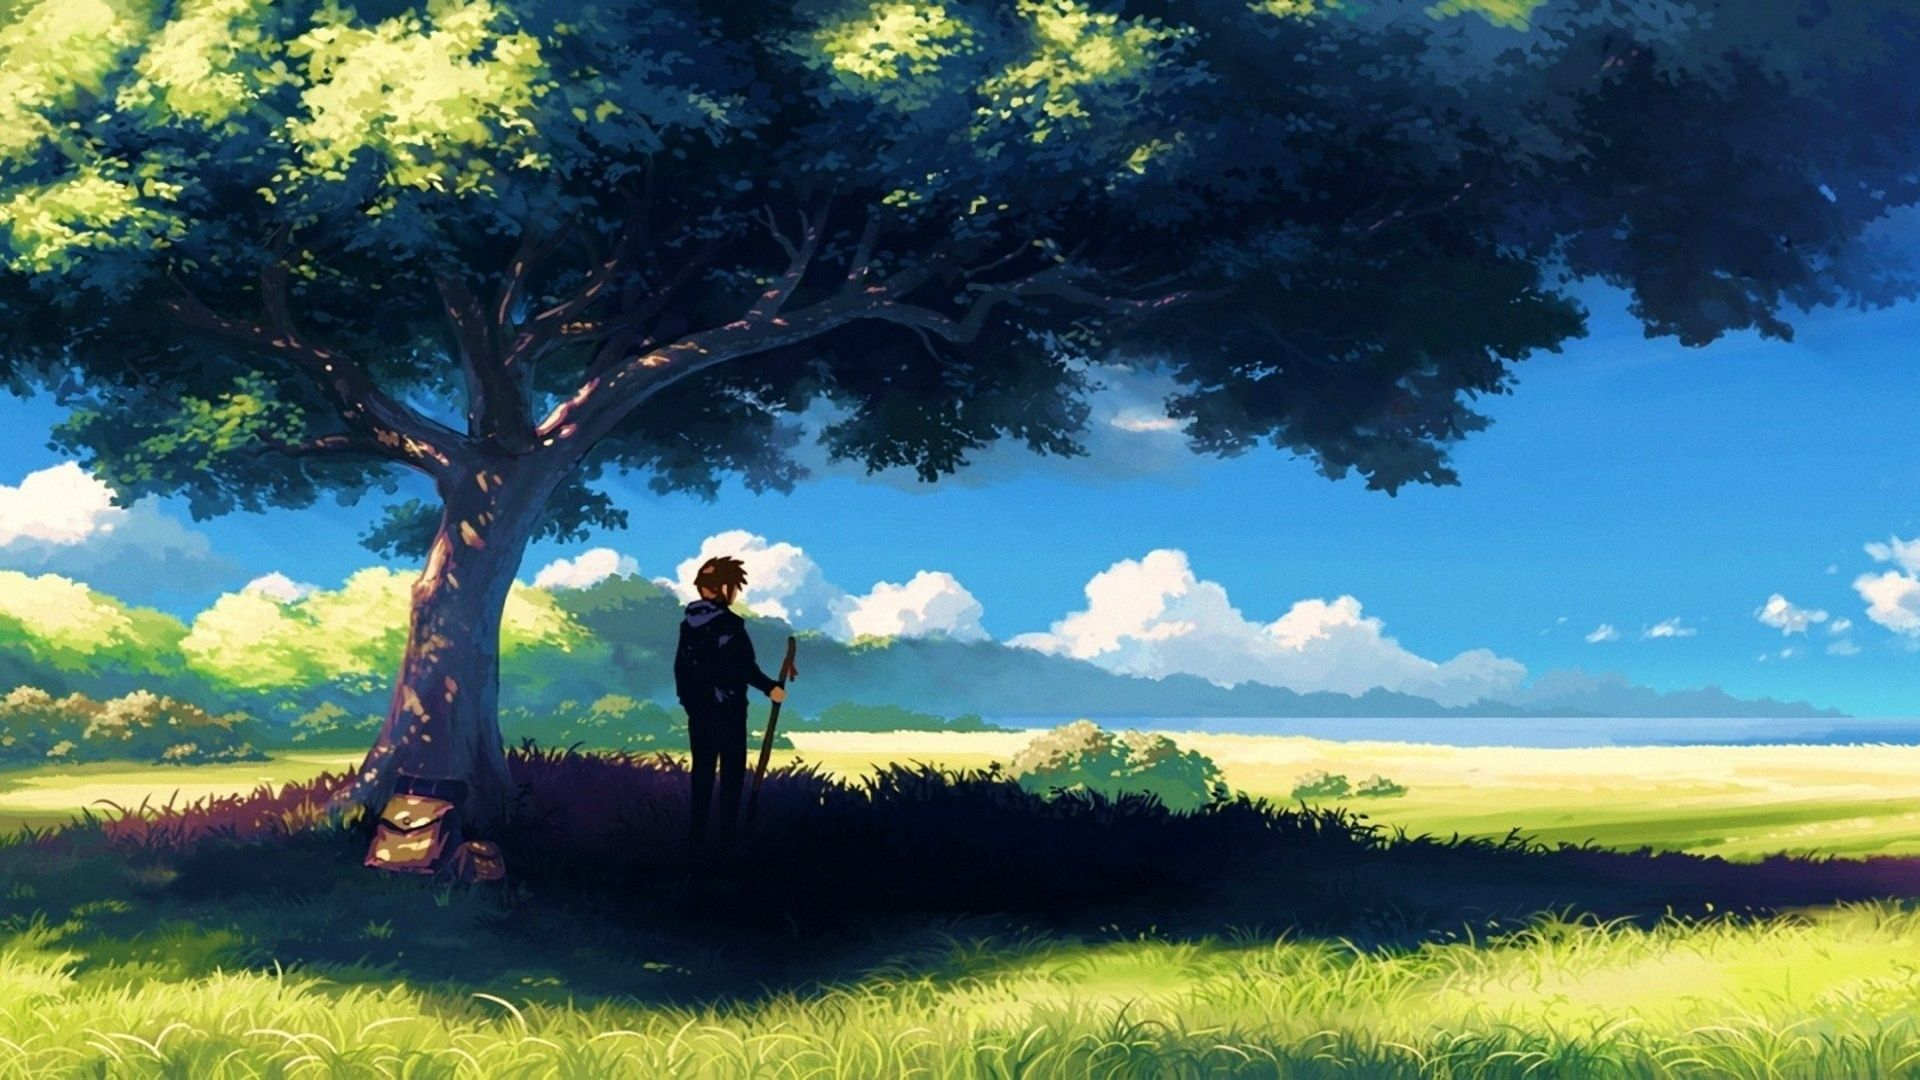 1920x1080 anime, scenery, boy under tree, anime scenery wallpapers